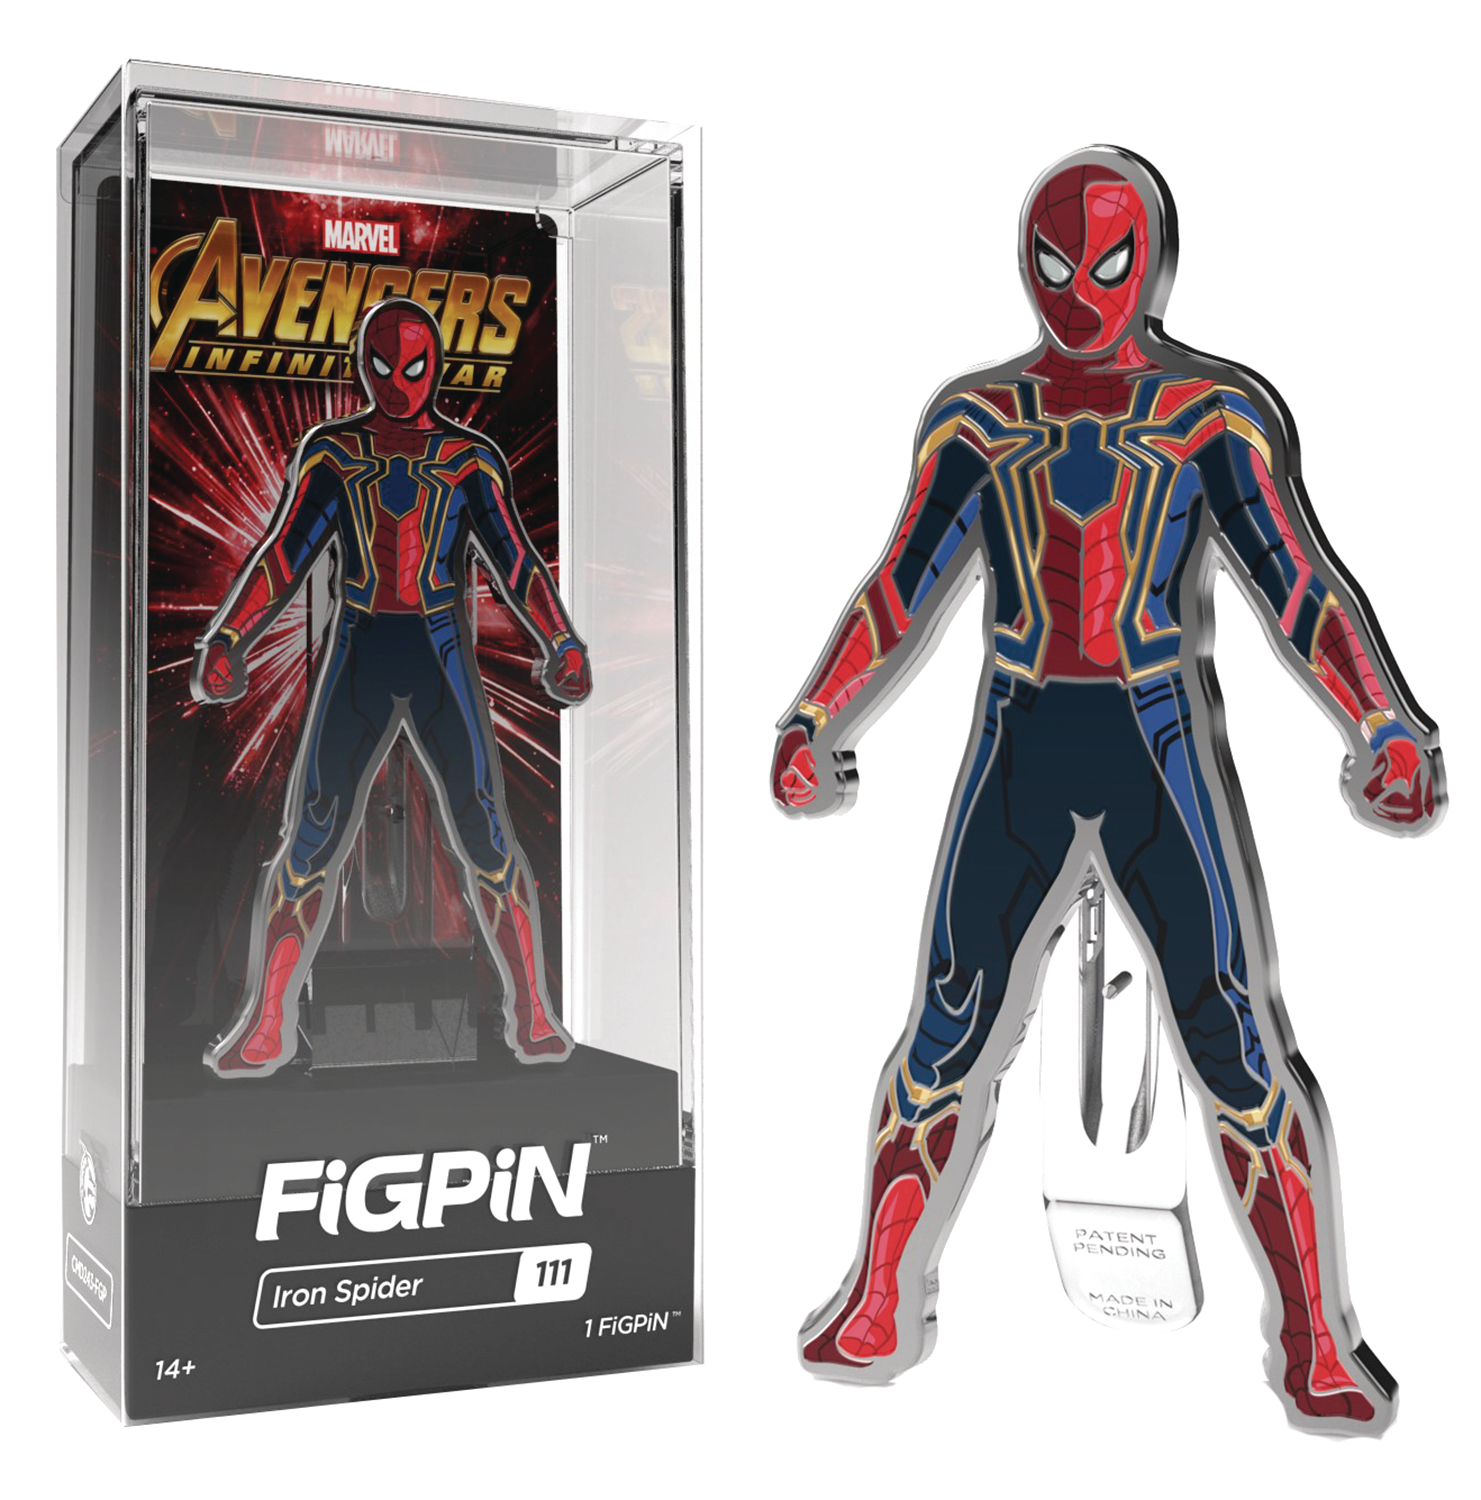 FIGPIN MARVEL AVENGERS IW SPIDER-MAN FIGURE PIN 6PC CASE